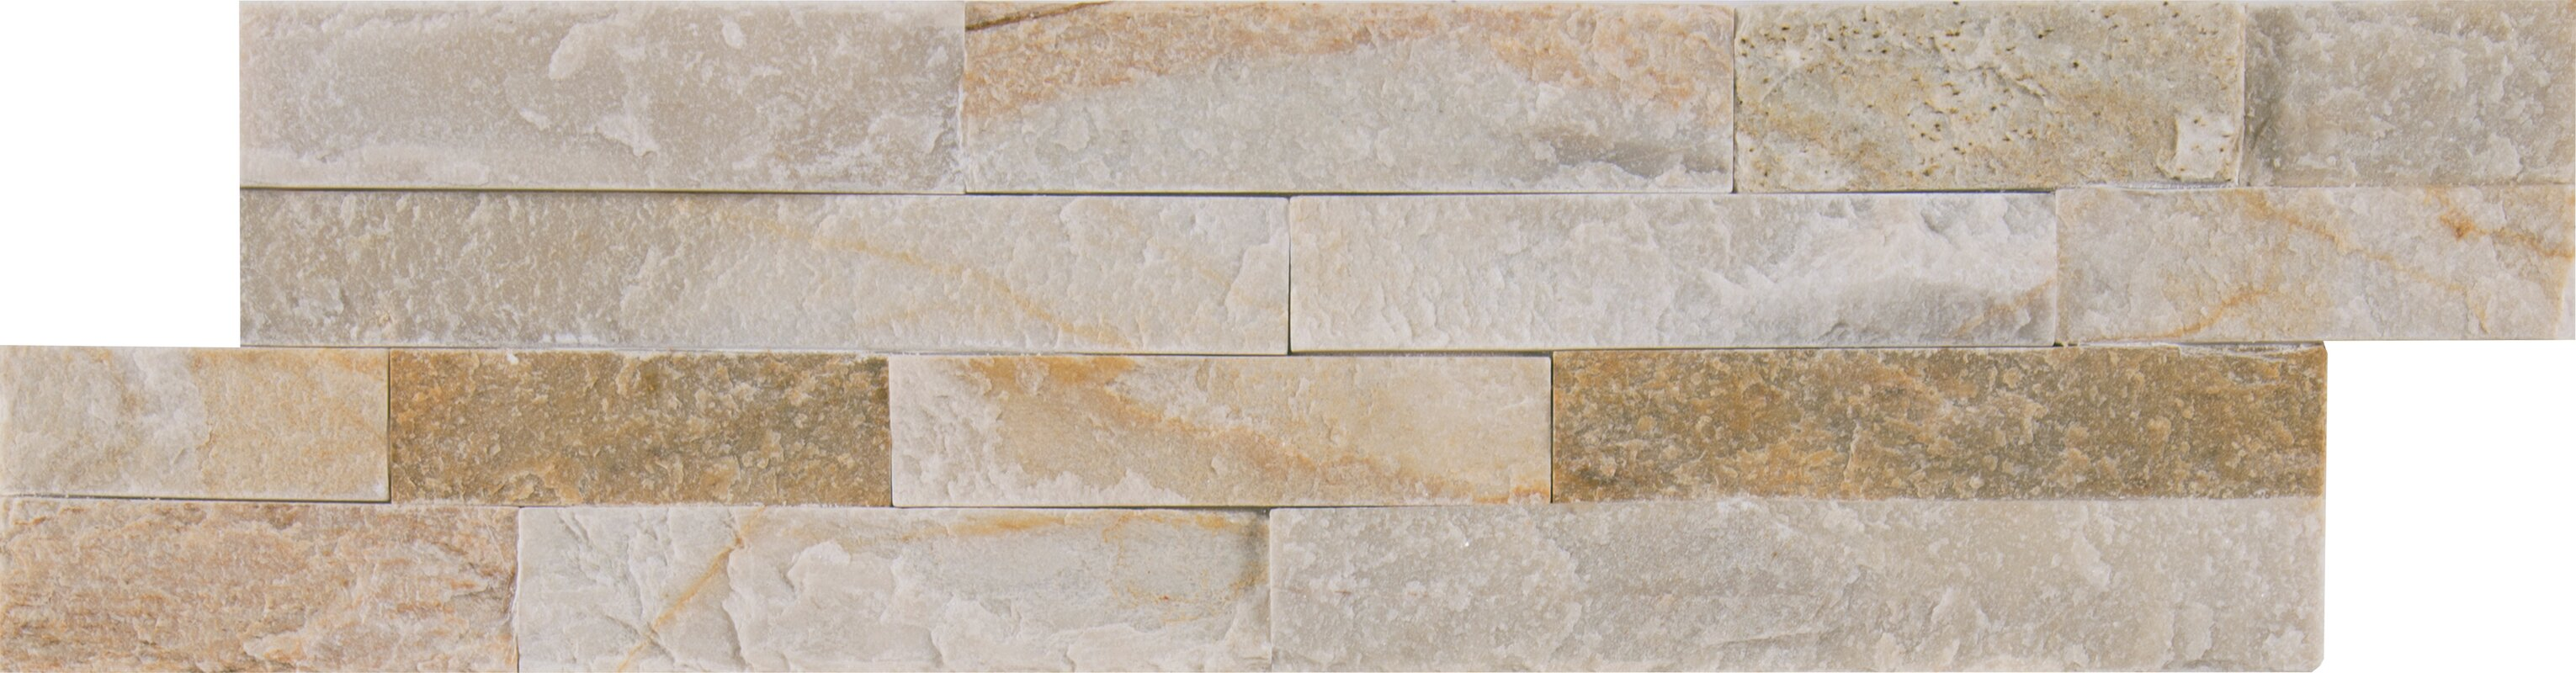 Msi golden honey natural stone mosaic tile in white reviews wayfair golden honey natural stone mosaic tile in white dailygadgetfo Gallery